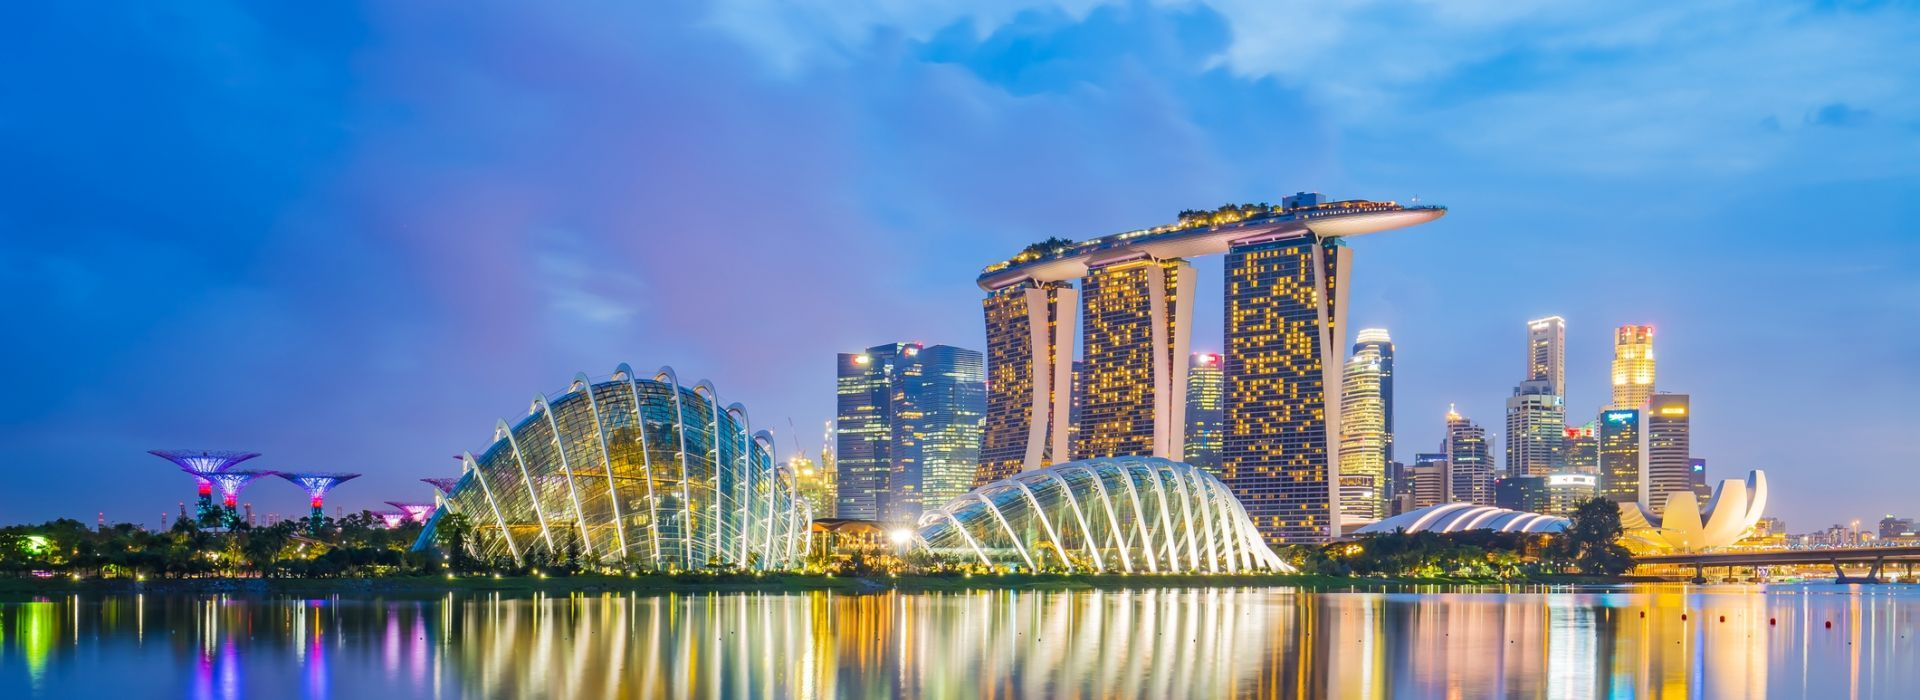 Sightseeing, attractions, culture and history Tours in Singapore